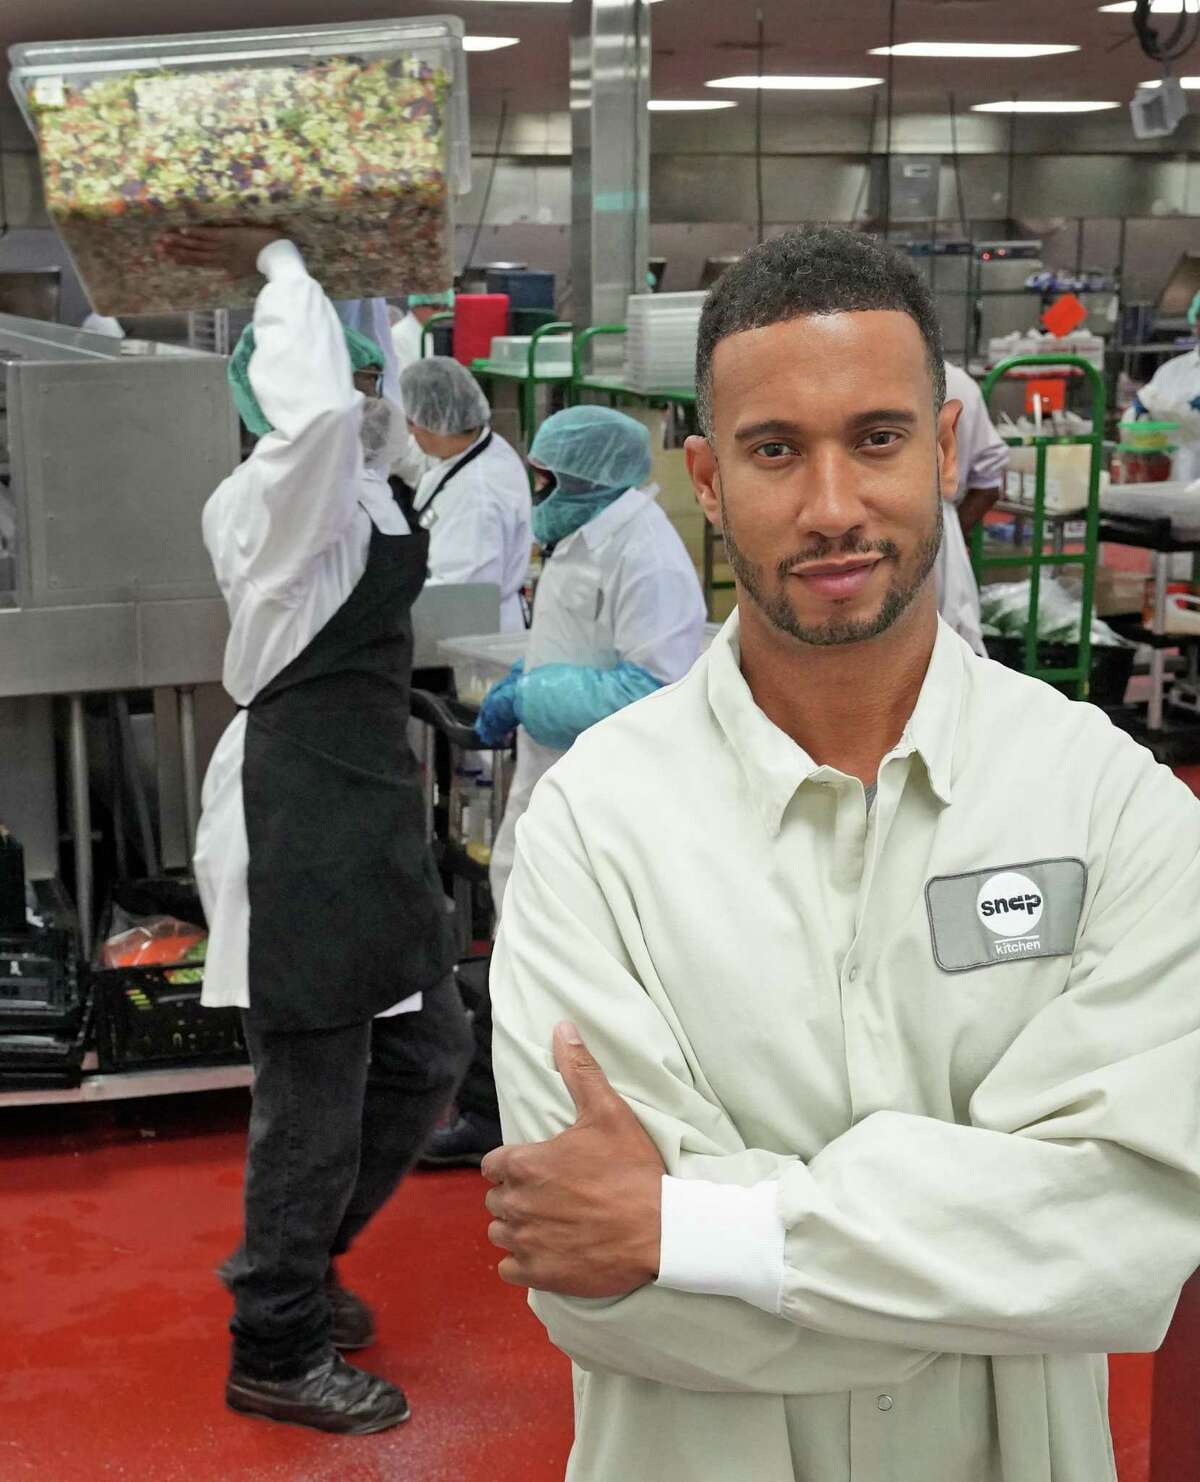 Snap Kitchen CEO Jon Carter is pictured at the Snap Kitchen commercial kitchen in Fort Worth, Texas on Tuesday, July 23, 2019. The Austin-based company recently announced plans to expand its home delivery of its prepared meals to 15 states nationwide.